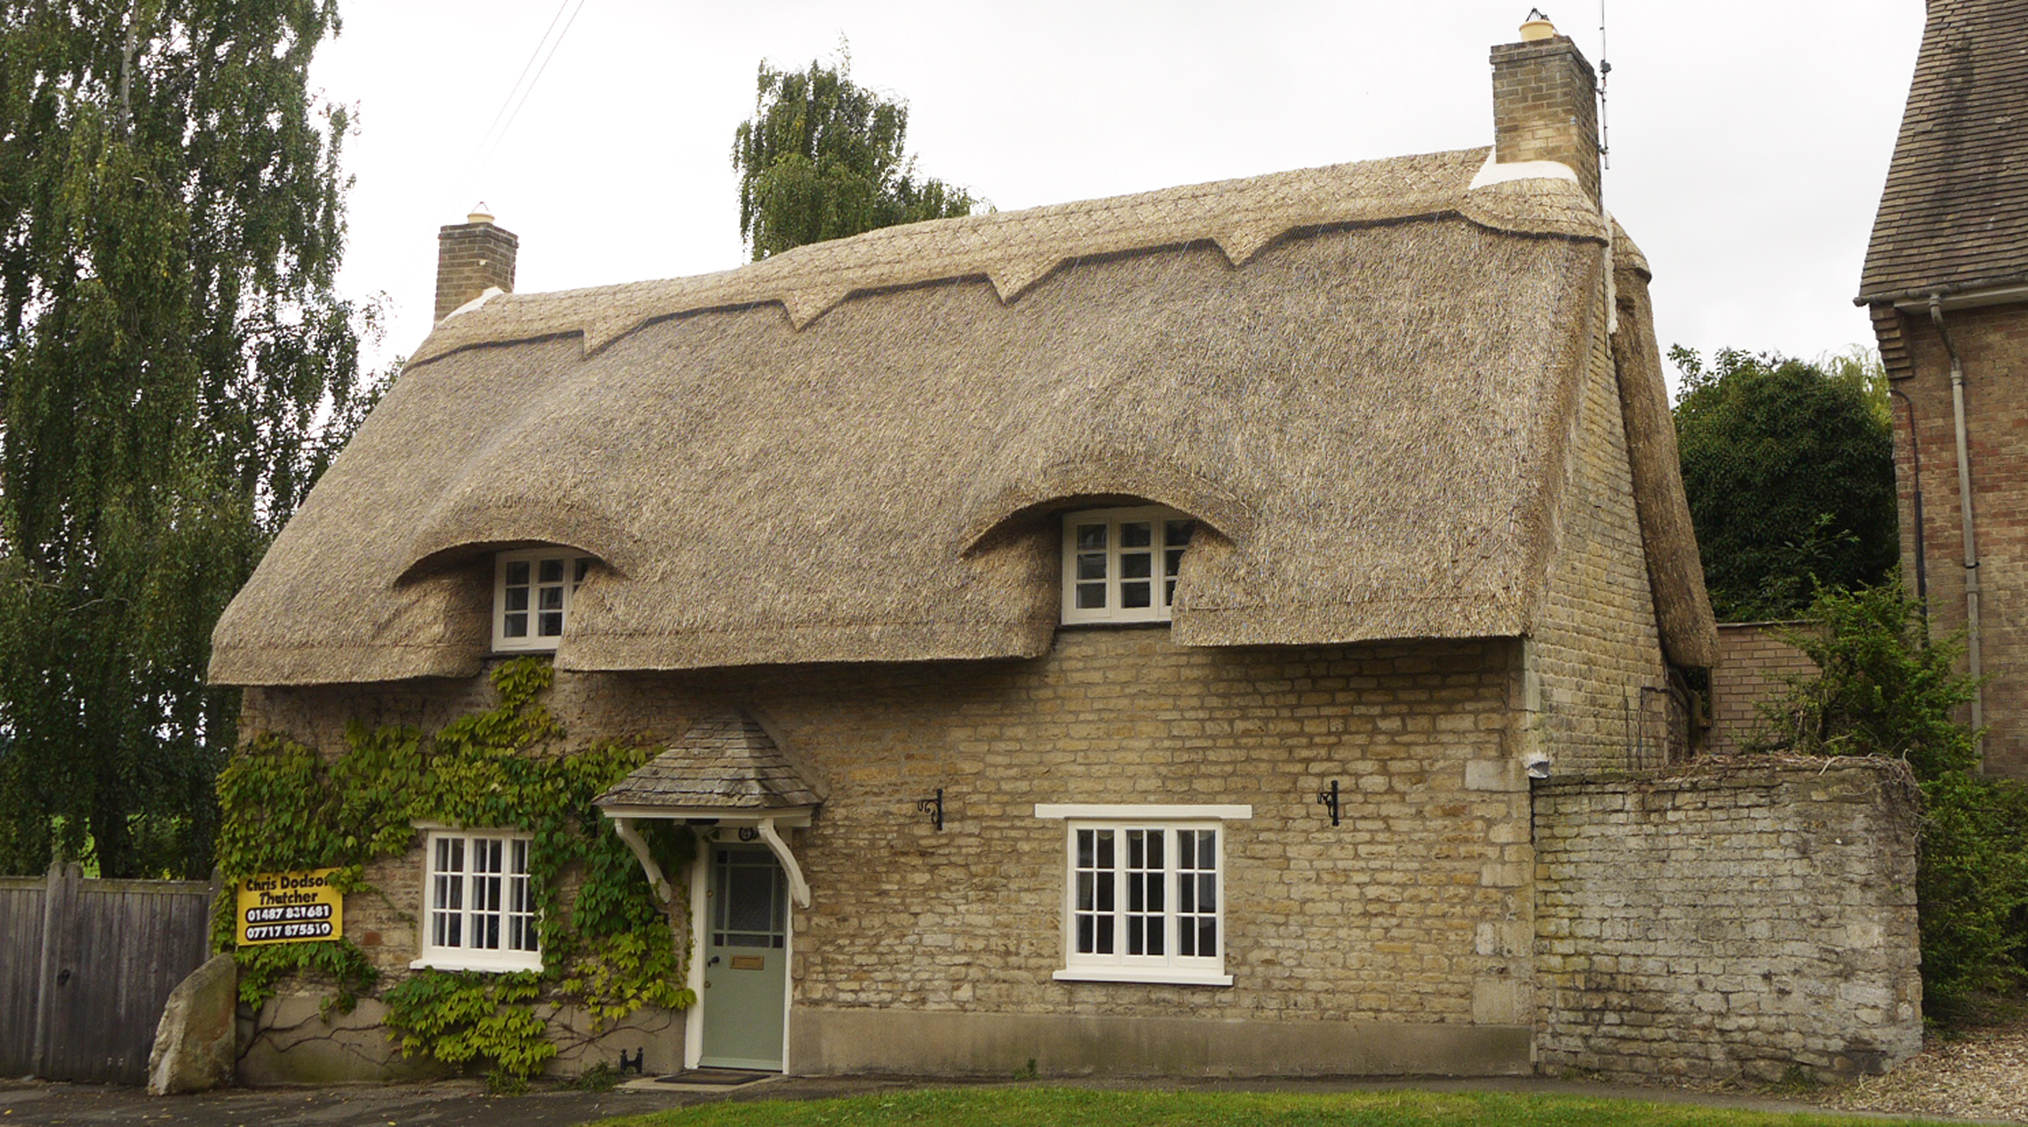 Long straw Re-Thatch